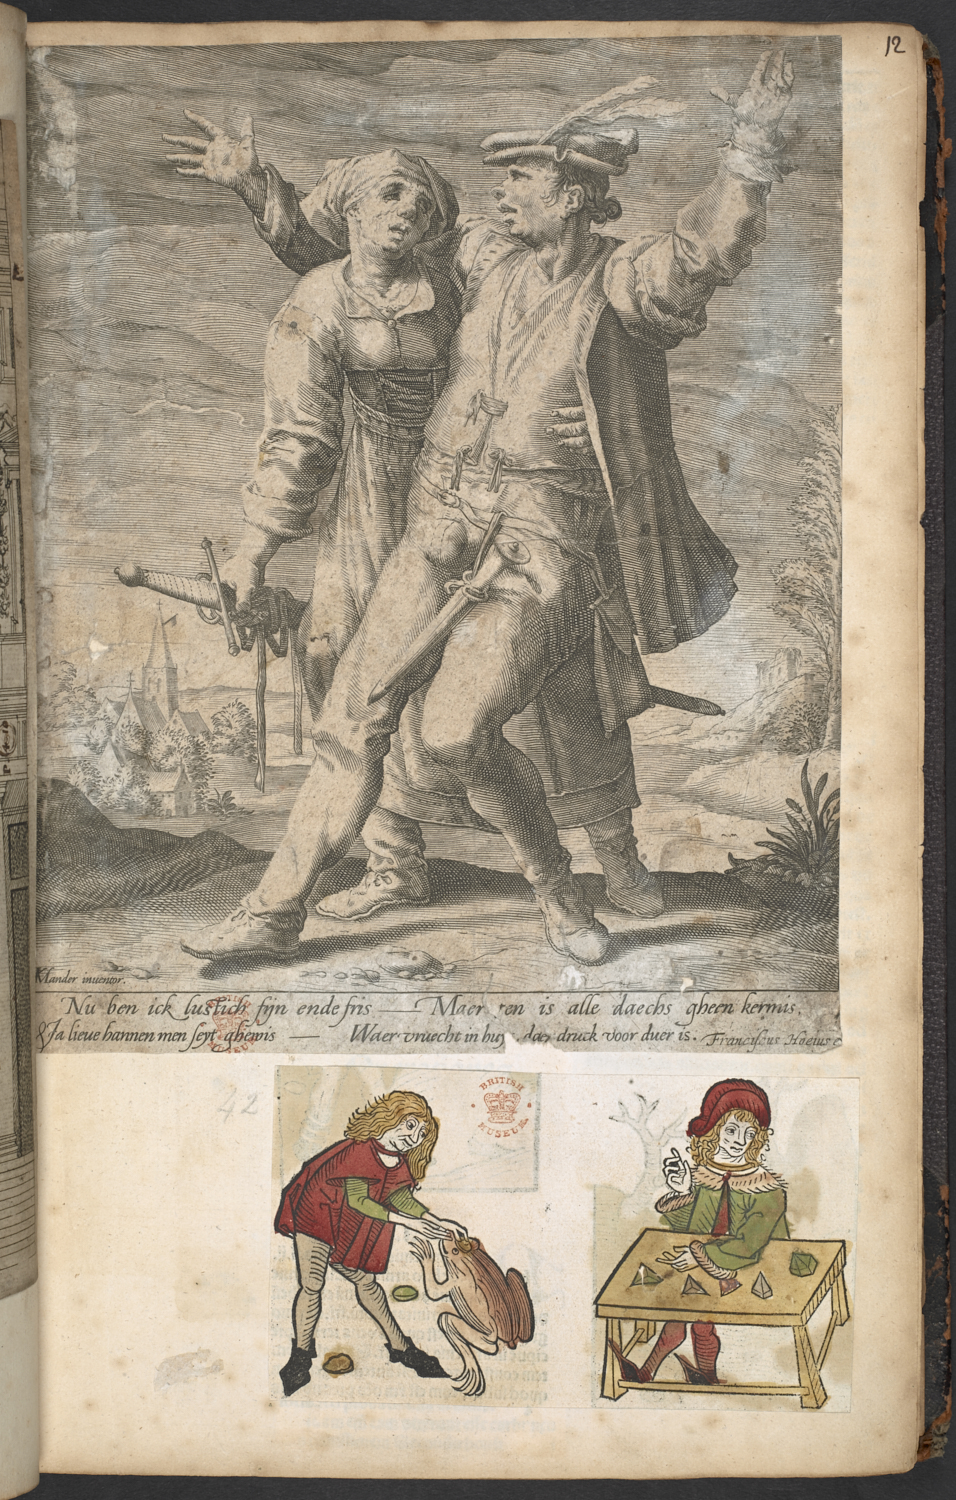 Anonymous, after Karel van Mander (1548-1606), Nu ben ick lustich frijn ende fris…, about 1588, engraving and etching, Harley MS 5944, f. 12.